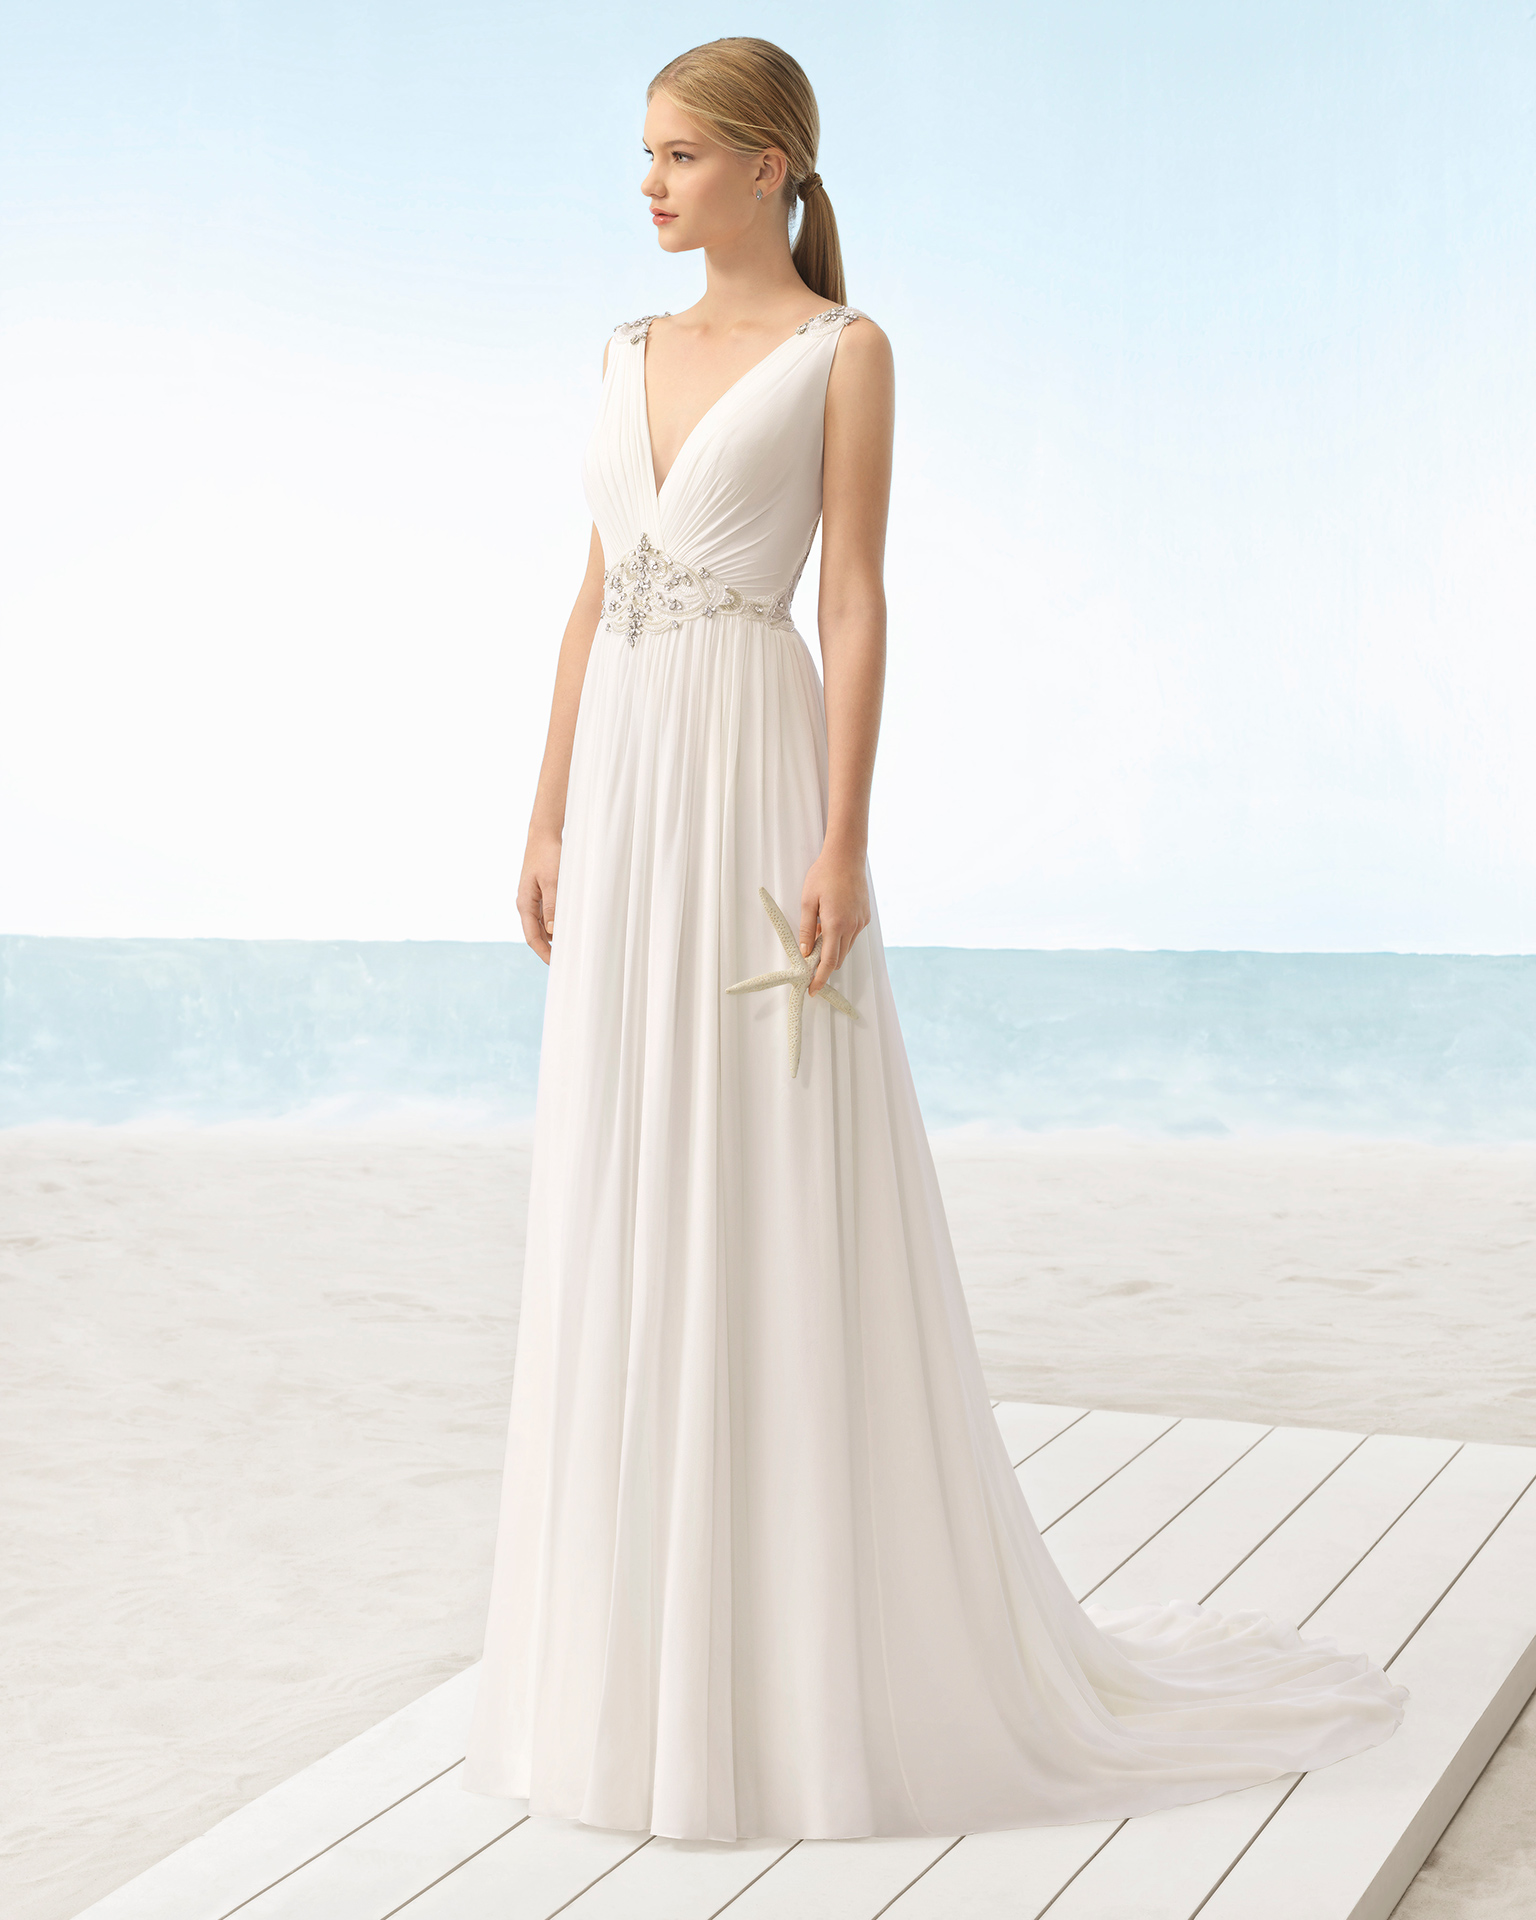 Boho-style silk chiffon wedding dress with V-neckline and jeweled back with beadwork detail.